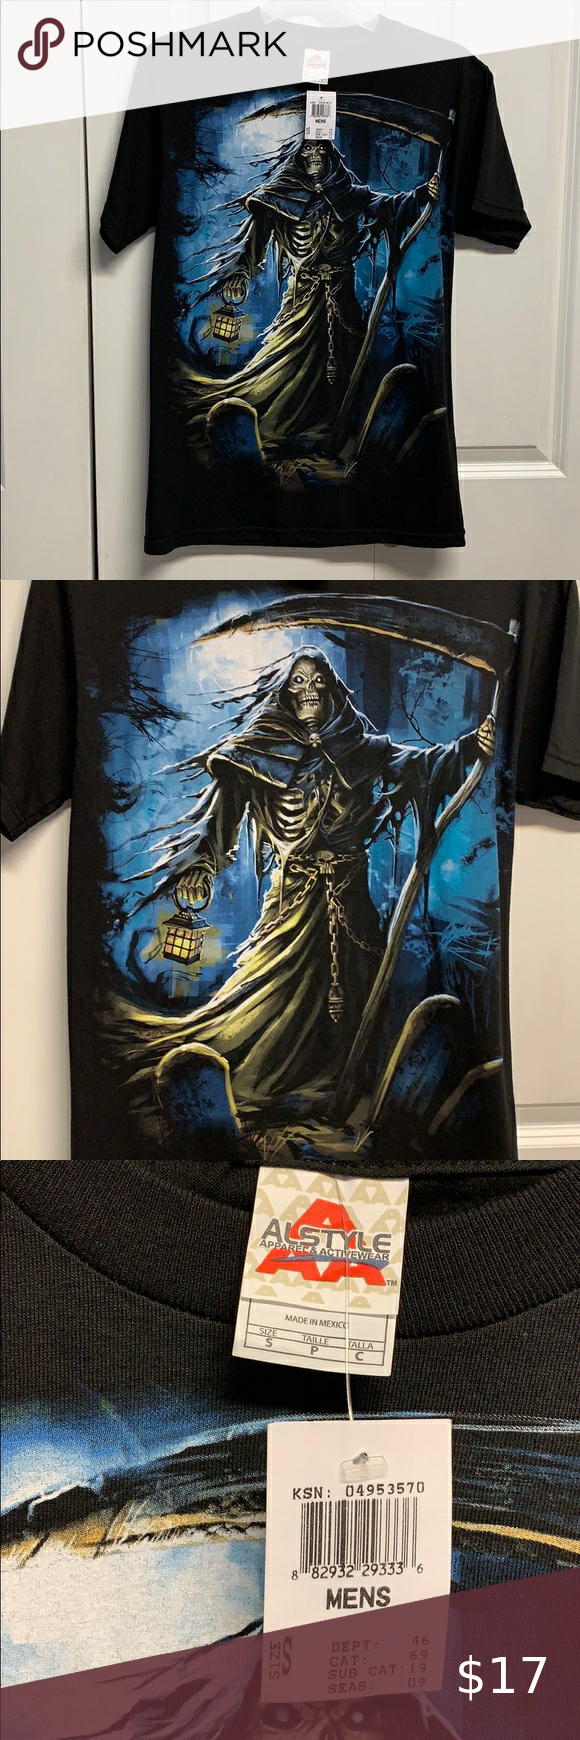 Alstyle Tee Shirt Size S Grim Reaper New Tee Shirts Tees Shirt Size